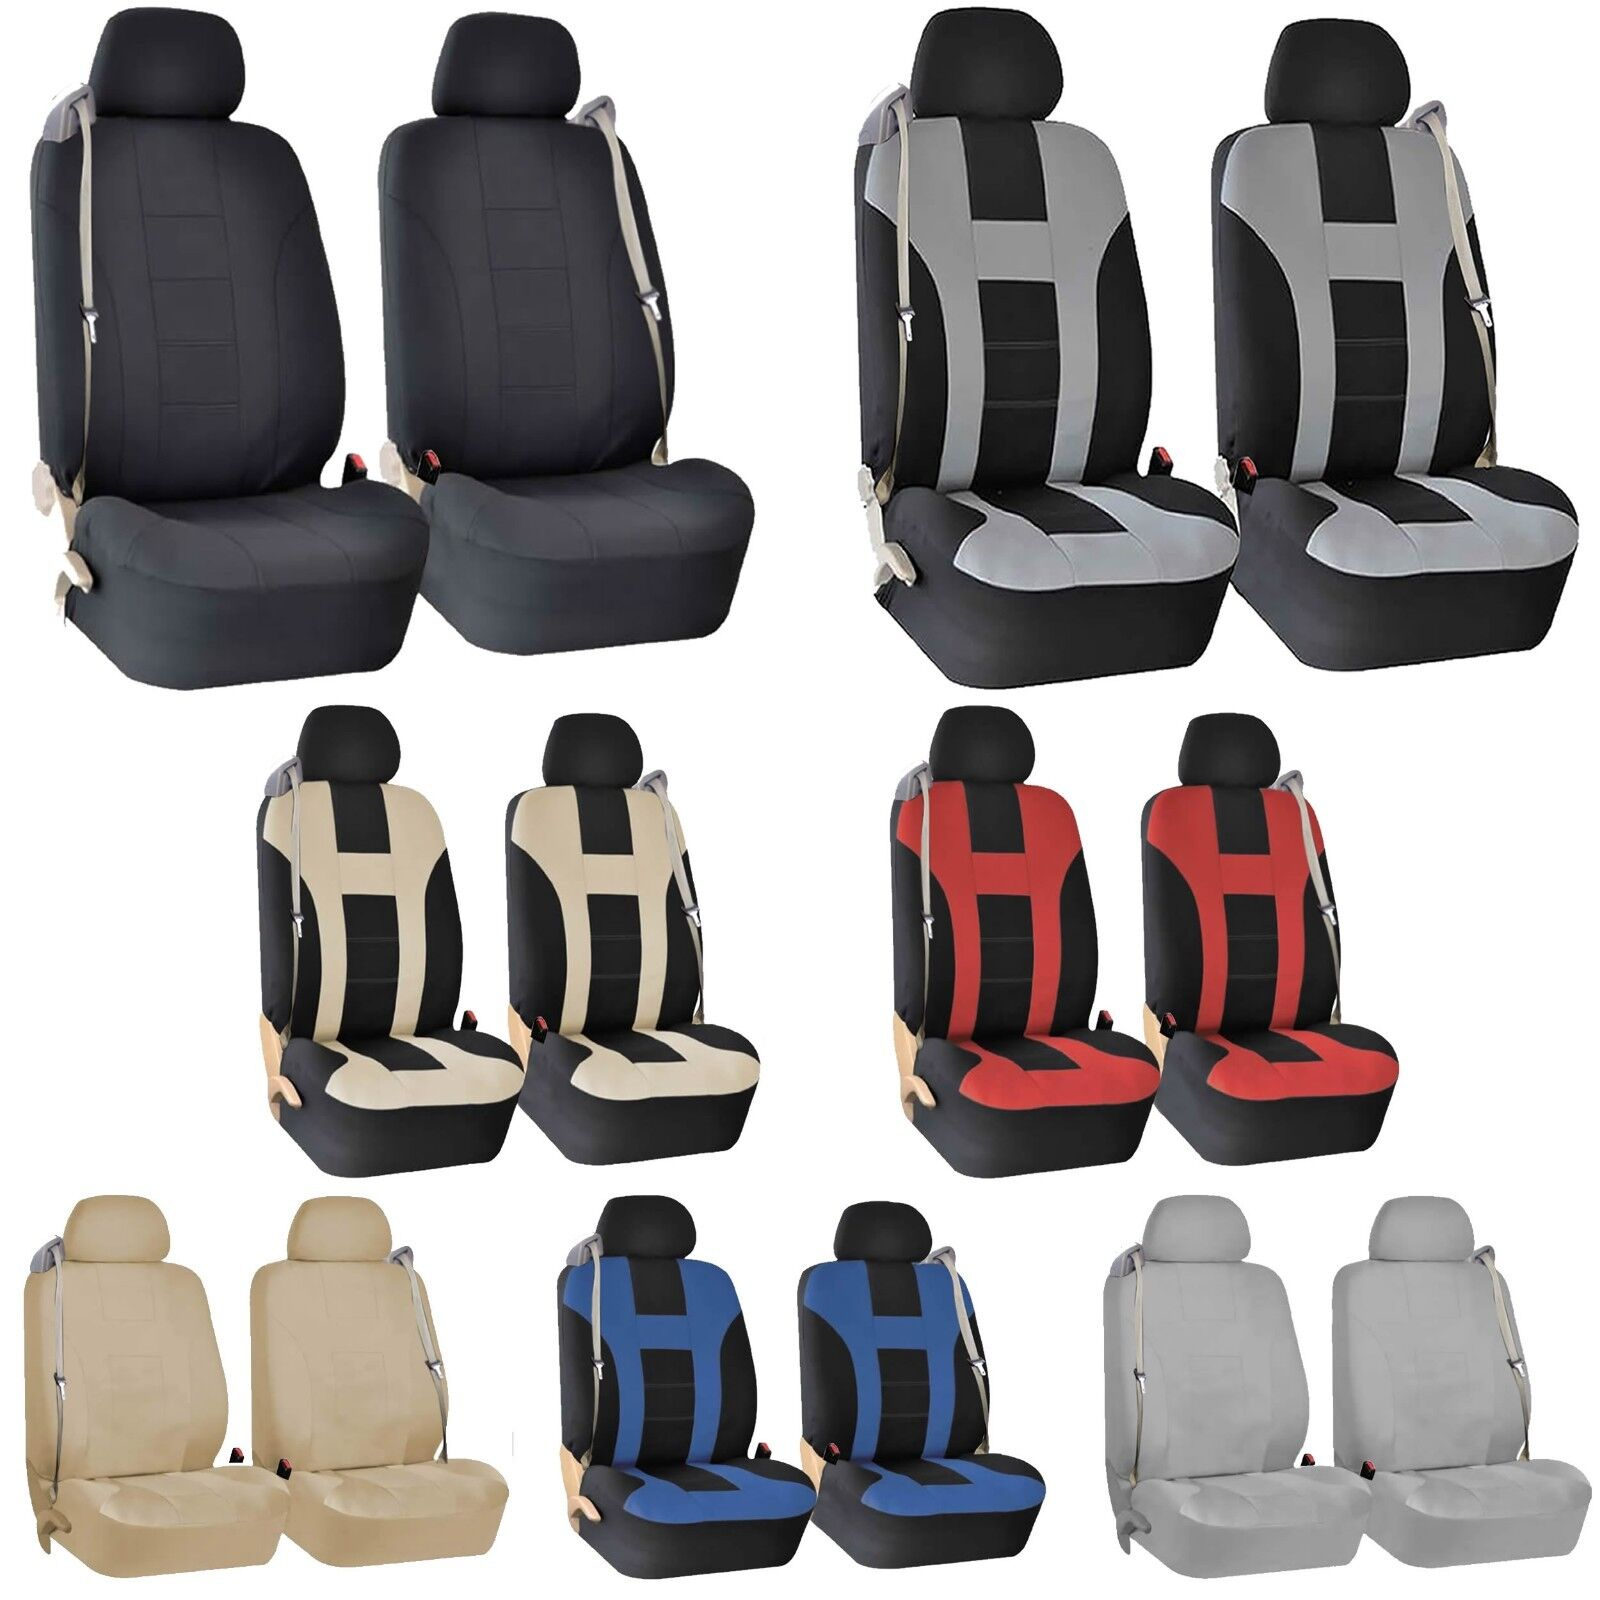 Miraculous Details About Premium Front Seat Covers For Car Truck Suv With Integrated Built In Seat Belts Caraccident5 Cool Chair Designs And Ideas Caraccident5Info